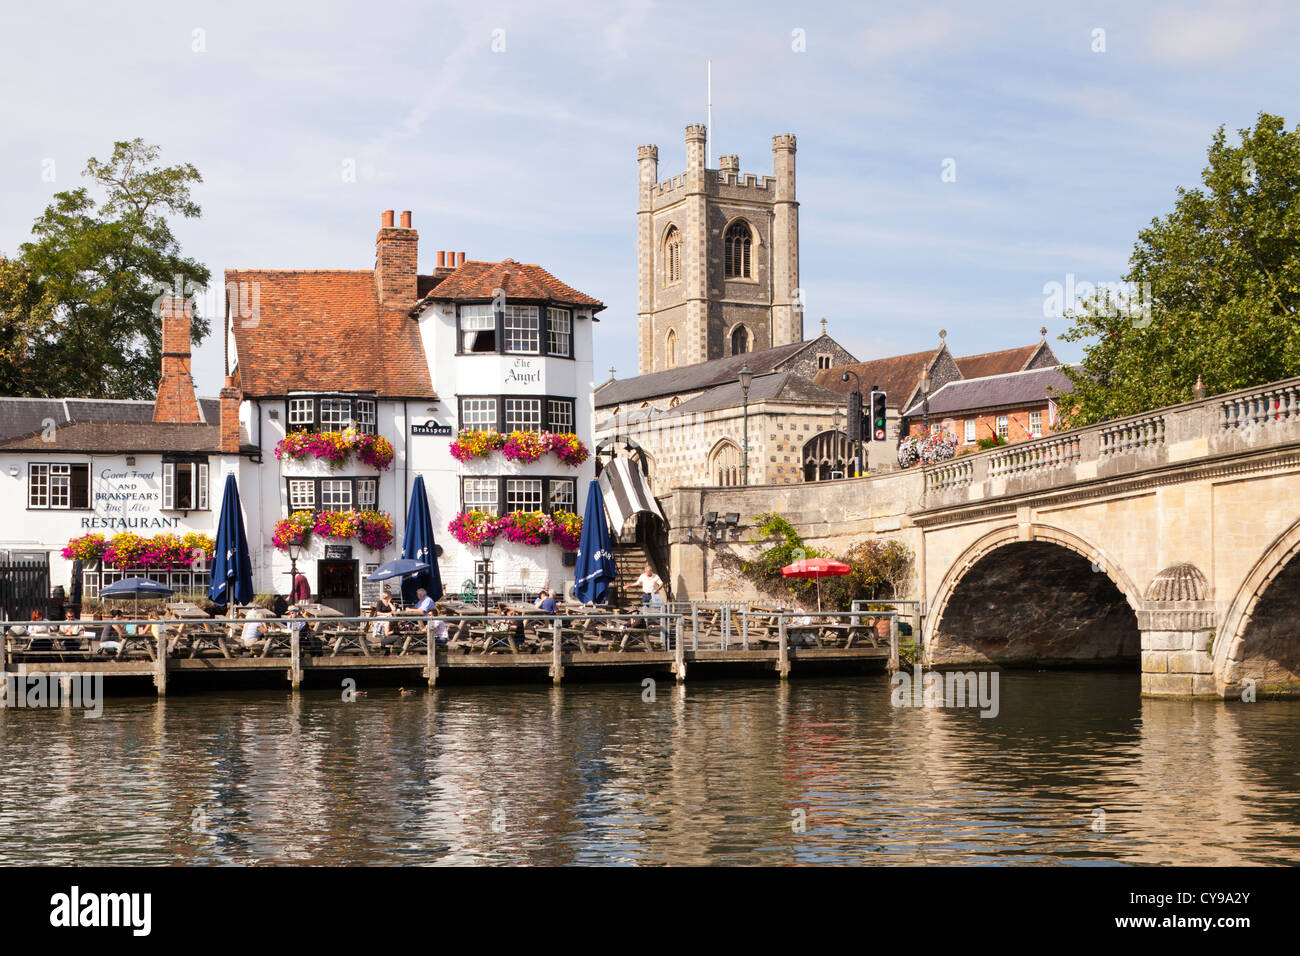 The church and the Angel Hotel next to the bridge over the River Thames at Henley on Thames, Oxfordshire, UK - Stock Image